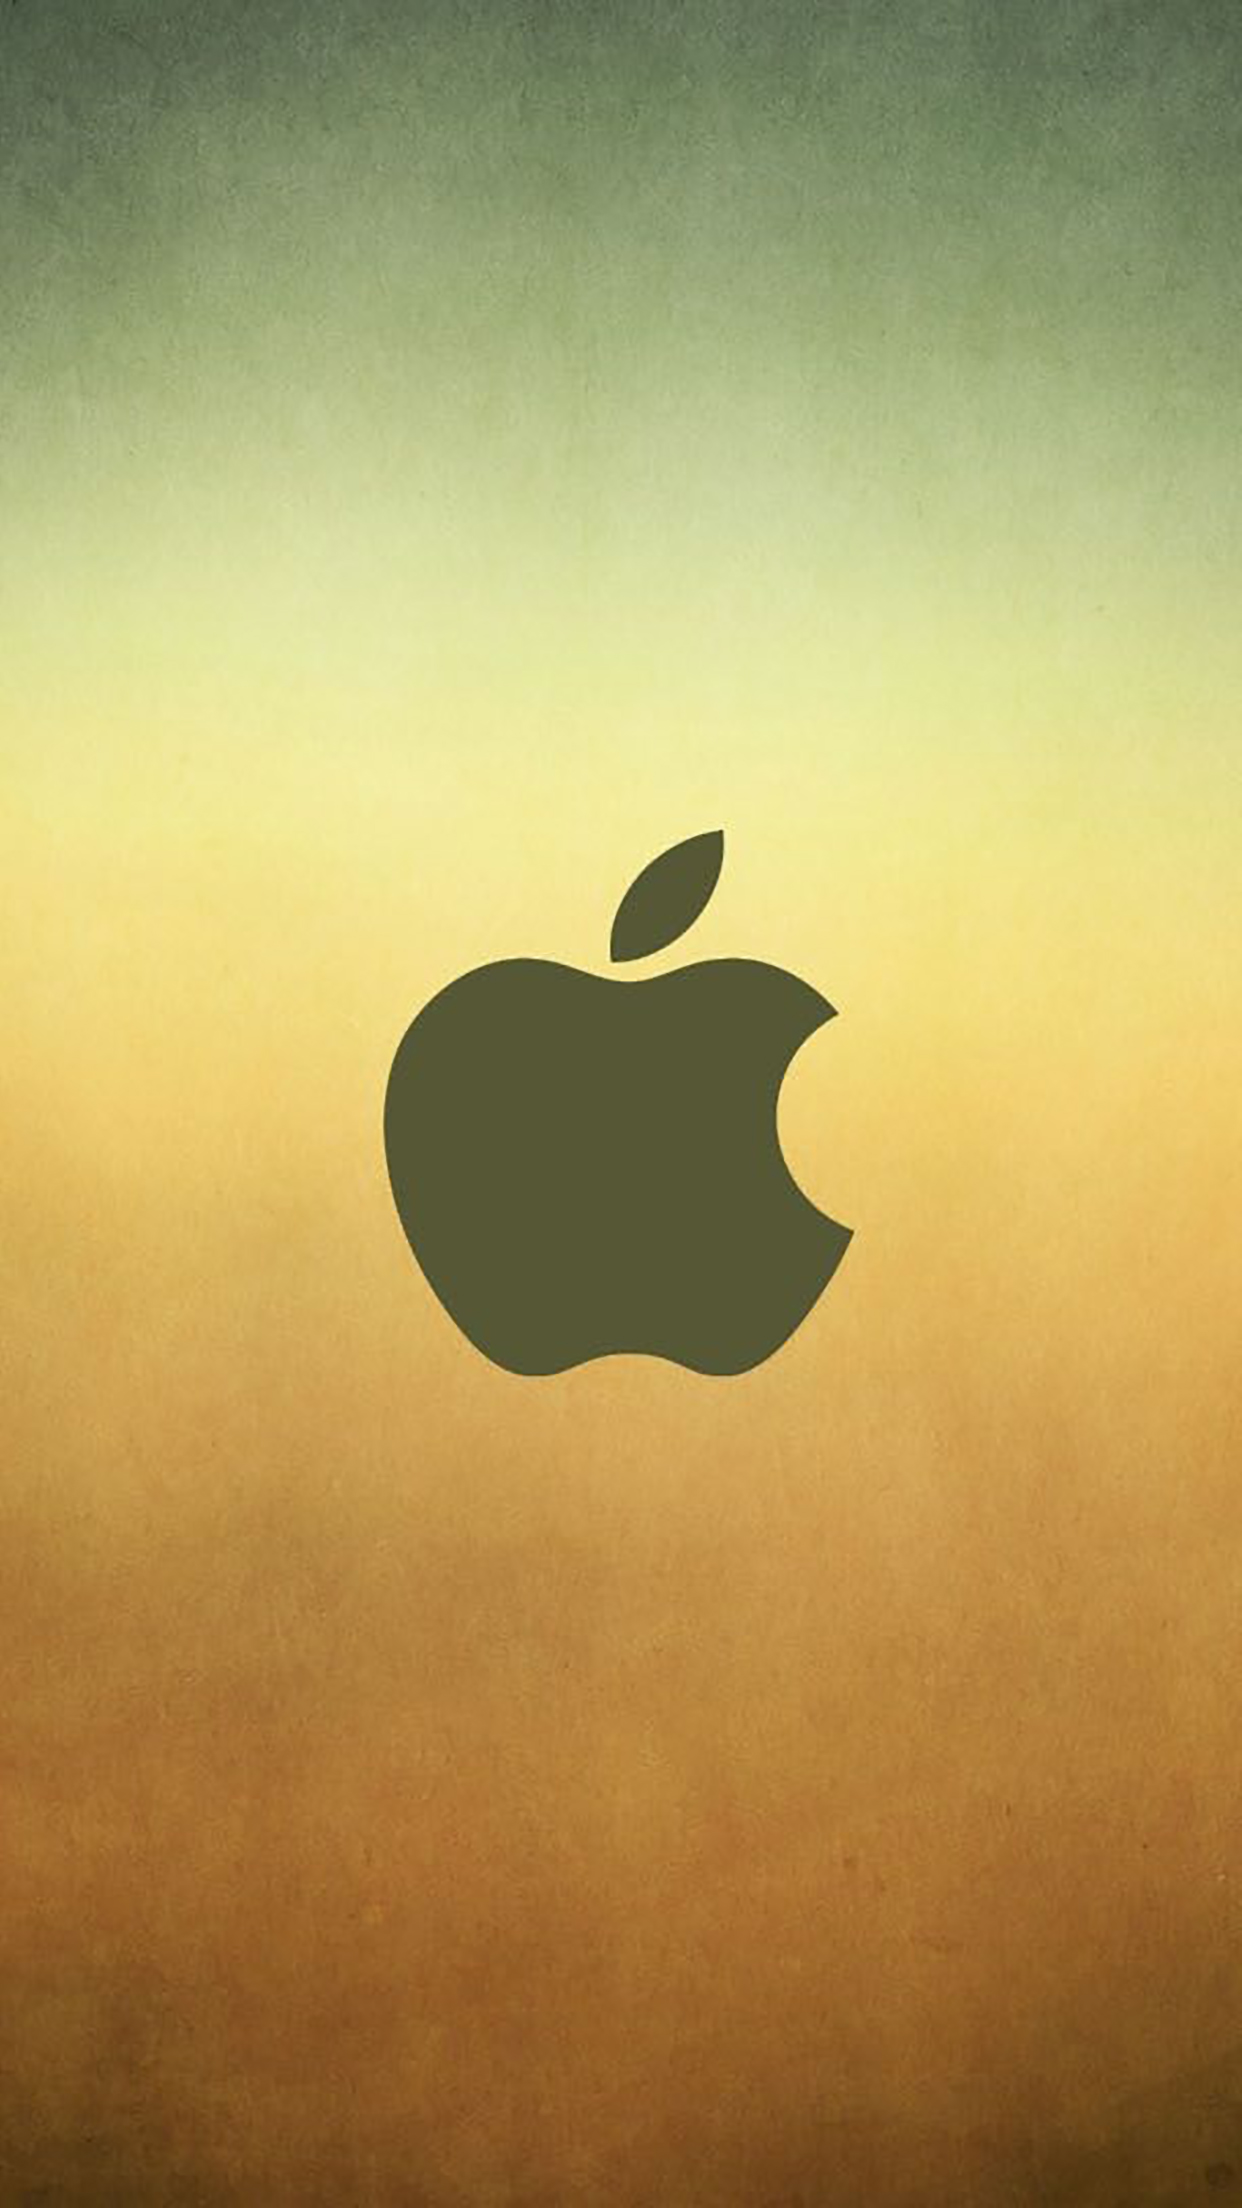 Apple Logo Apple Logo 3 3Wallpapers iPhone Parallax Apple Logo : Simple